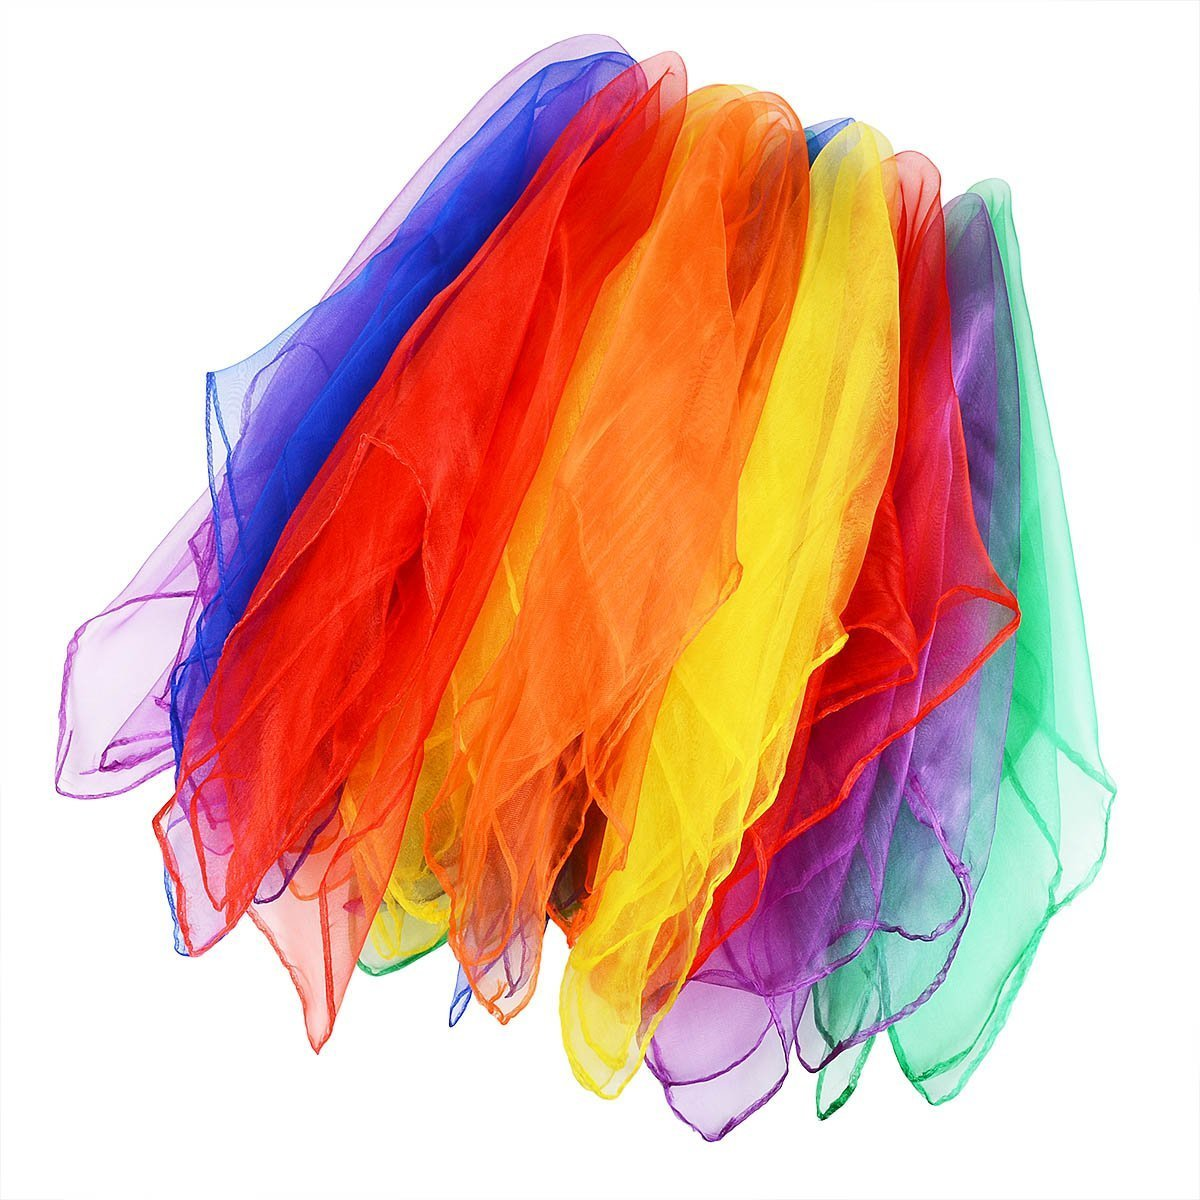 Qinlee 12pcs (couleur assortie) Multi-Color Foulards Danse Foulards Ourlé Jonglage, 6 Colors (60cm x 60cm)  6 Colors (60cm x 60cm)